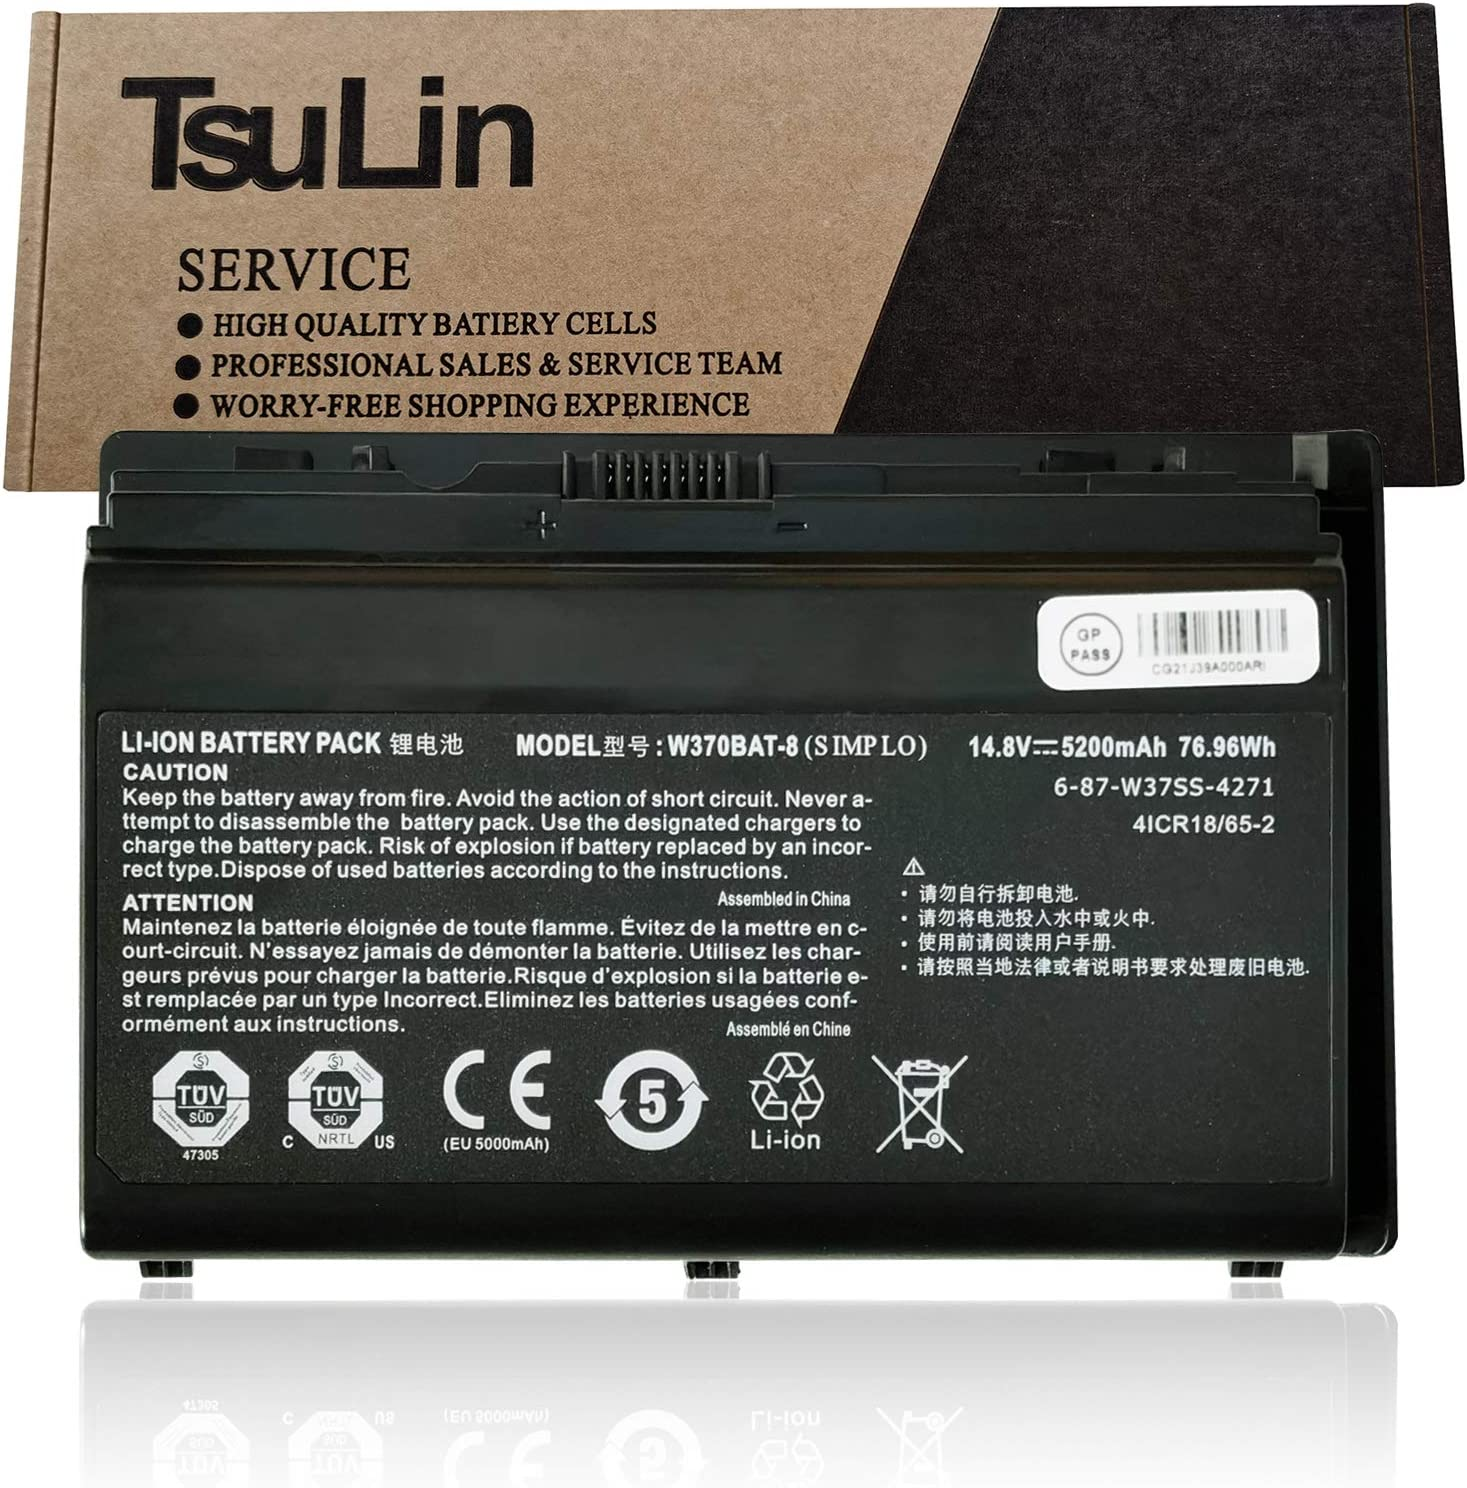 TsuLin Max 49% New sales OFF W370BAT-8 Laptop Battery Replacement W35 Clevo W350ET for